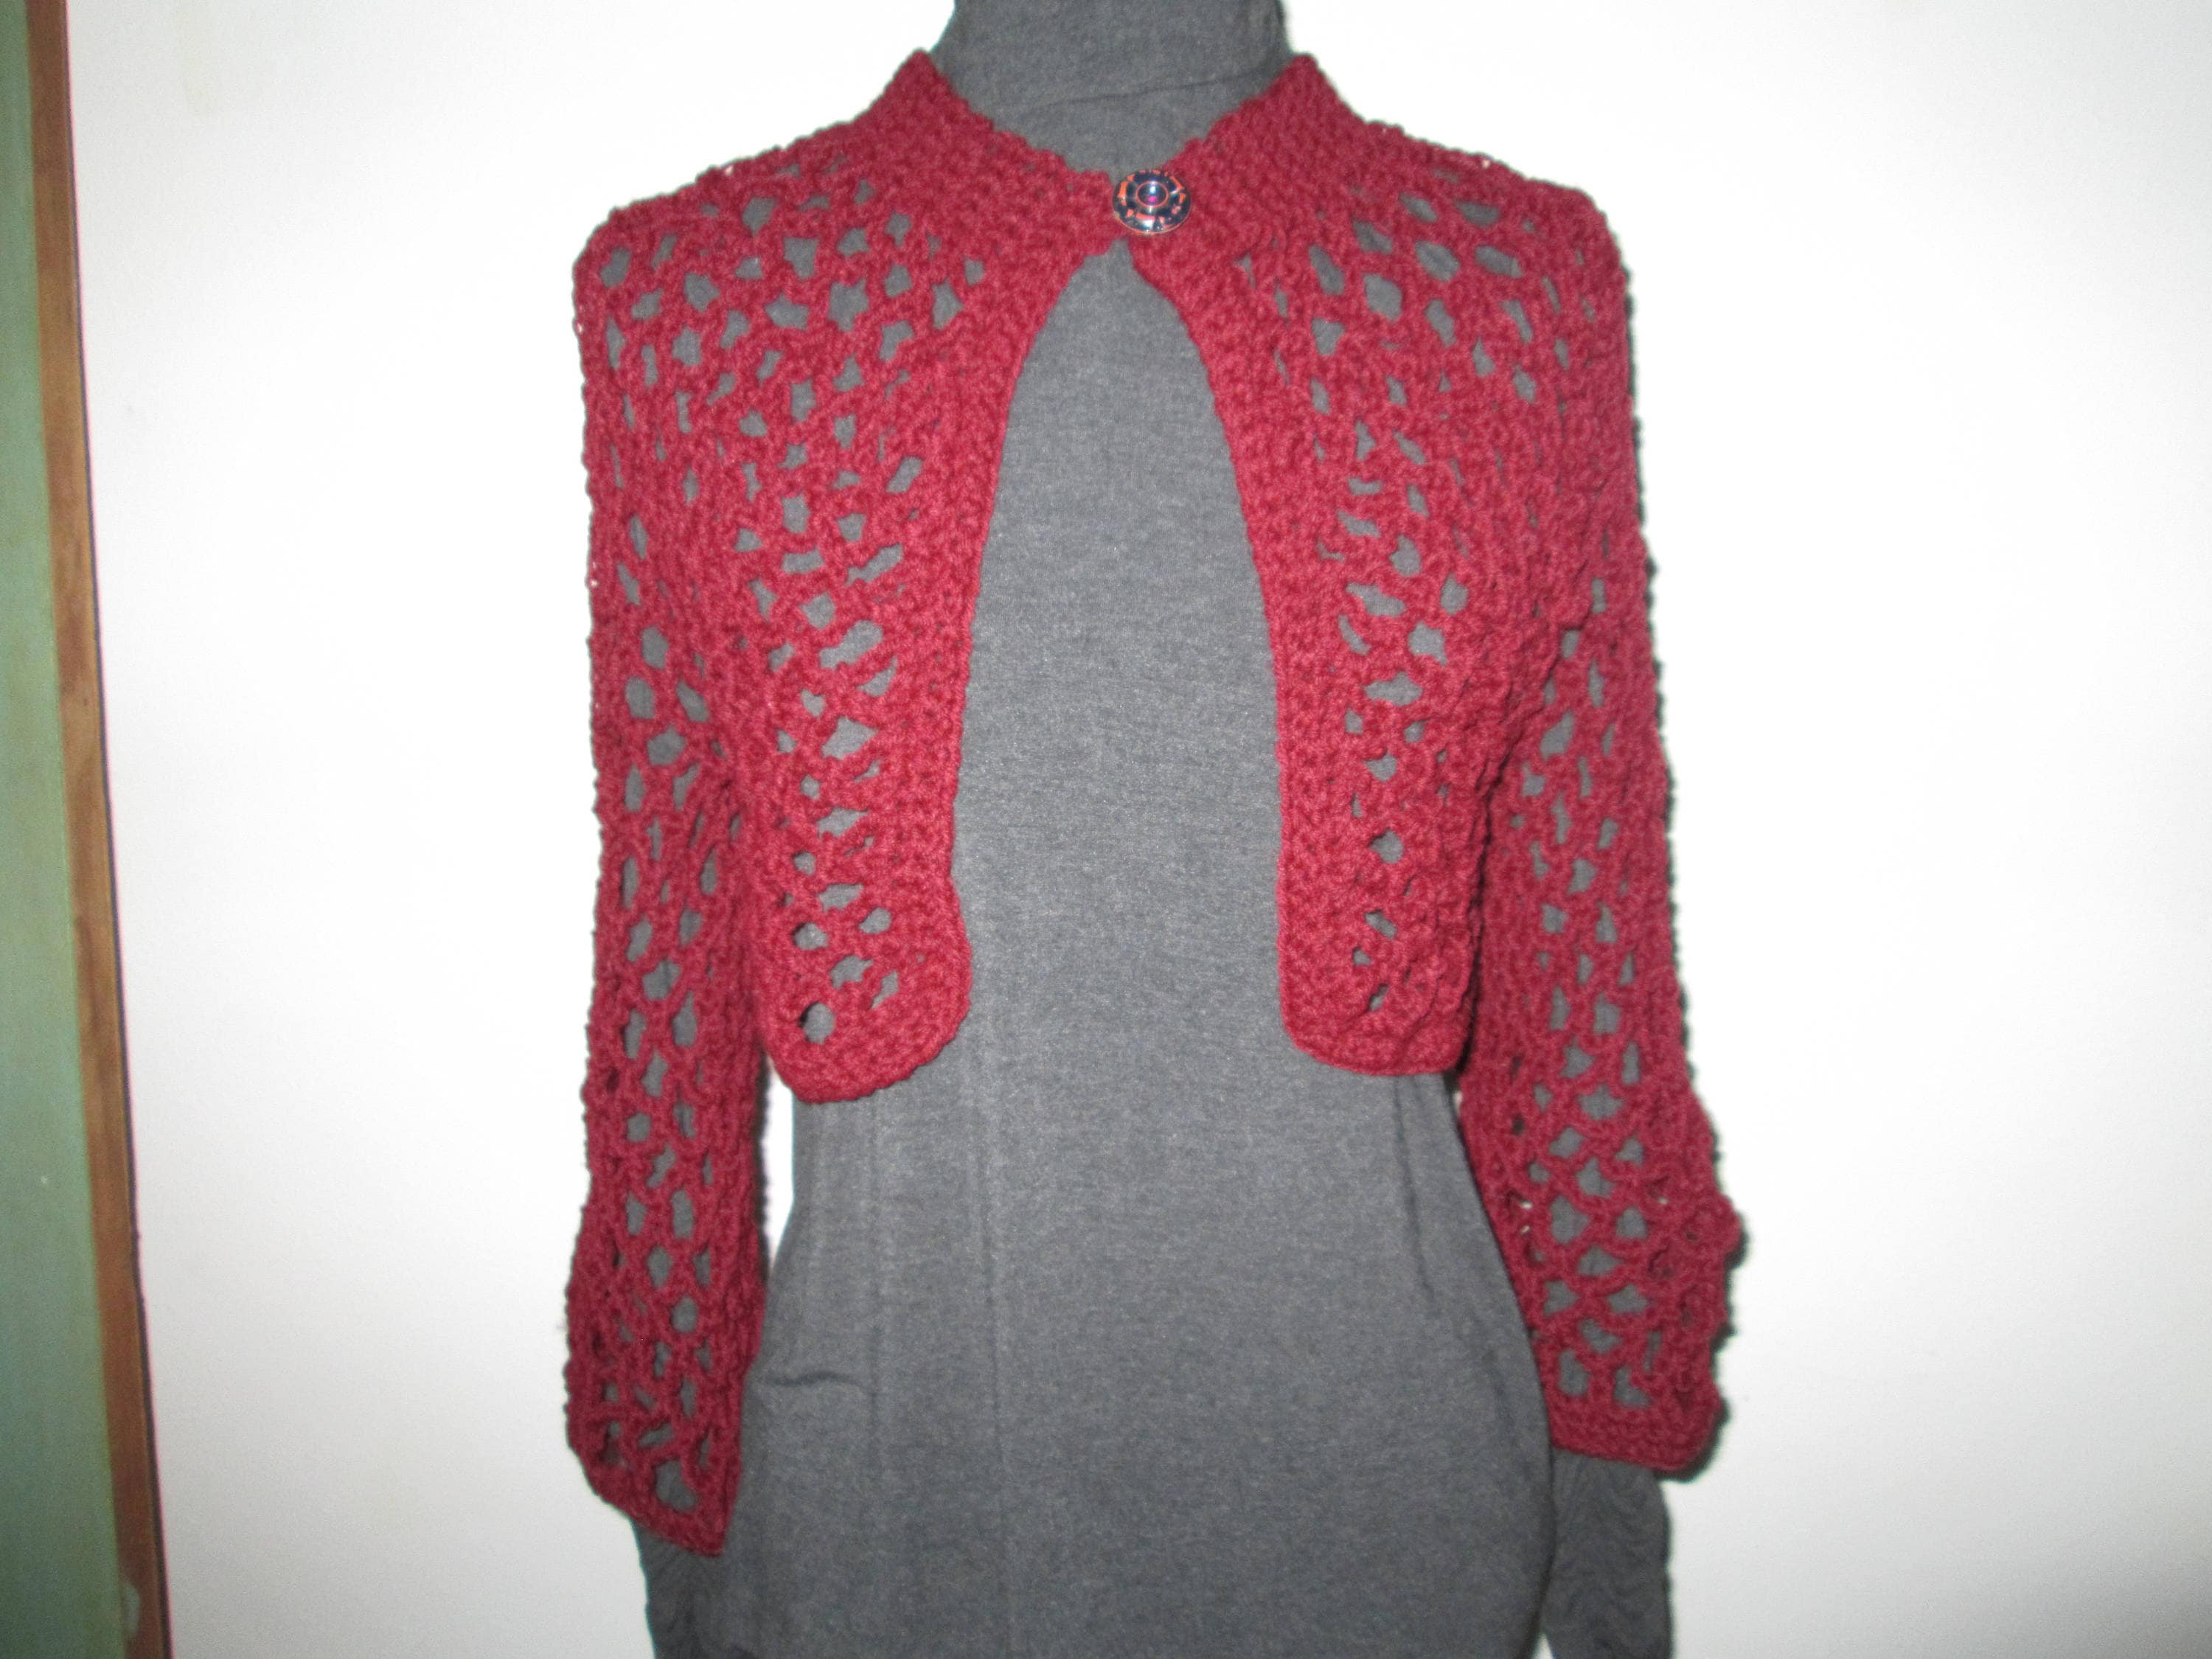 87386a8fef94 Acrylic Burgundy Womens Sweater Crocheted by SuzannesStitches